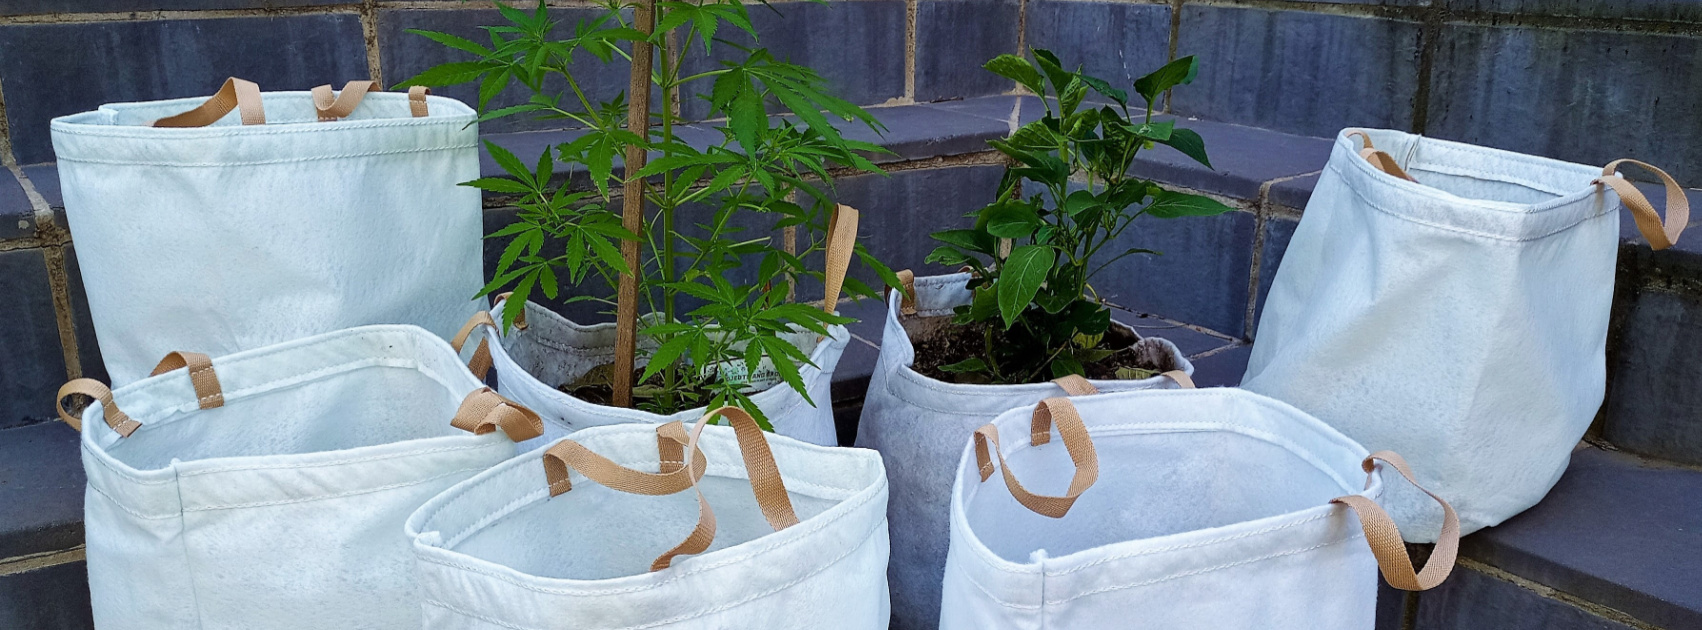 Growing Solutions Products